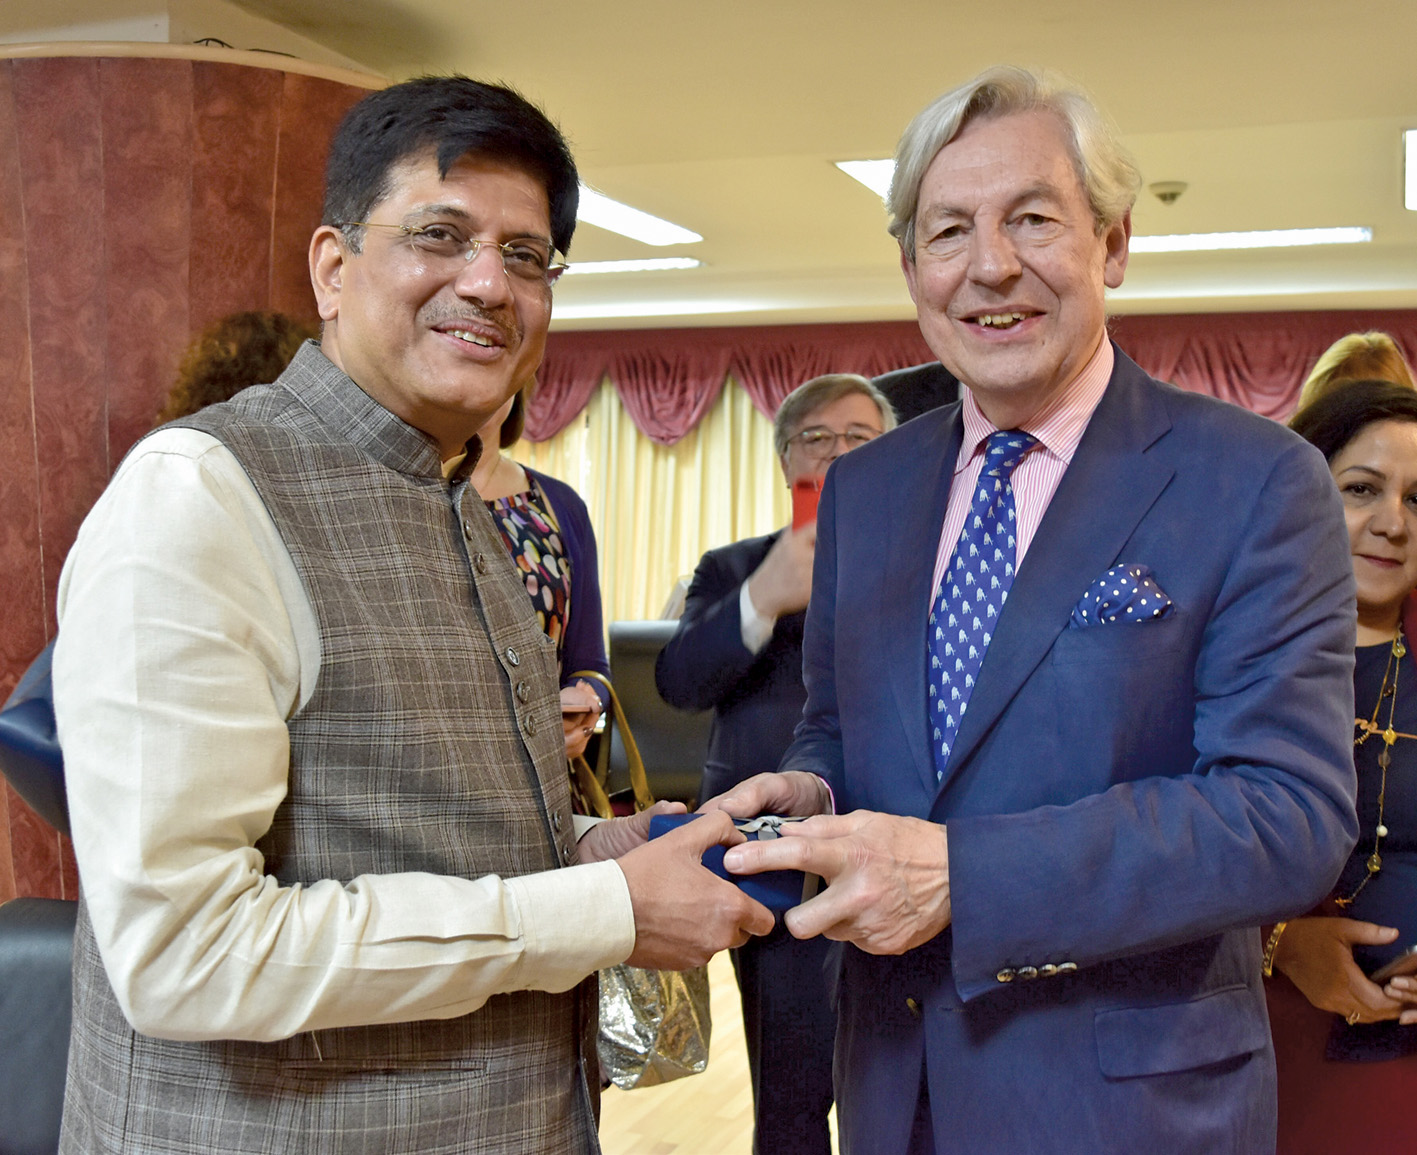 Piyush Goyal, Minister of State for Power, Coal, New and Renewable Energy and Mines (Independent Charge), meets Geoffrey Van Orden, Vice-Chair, European Conservatives and Reformists Group (right), in New Delhi